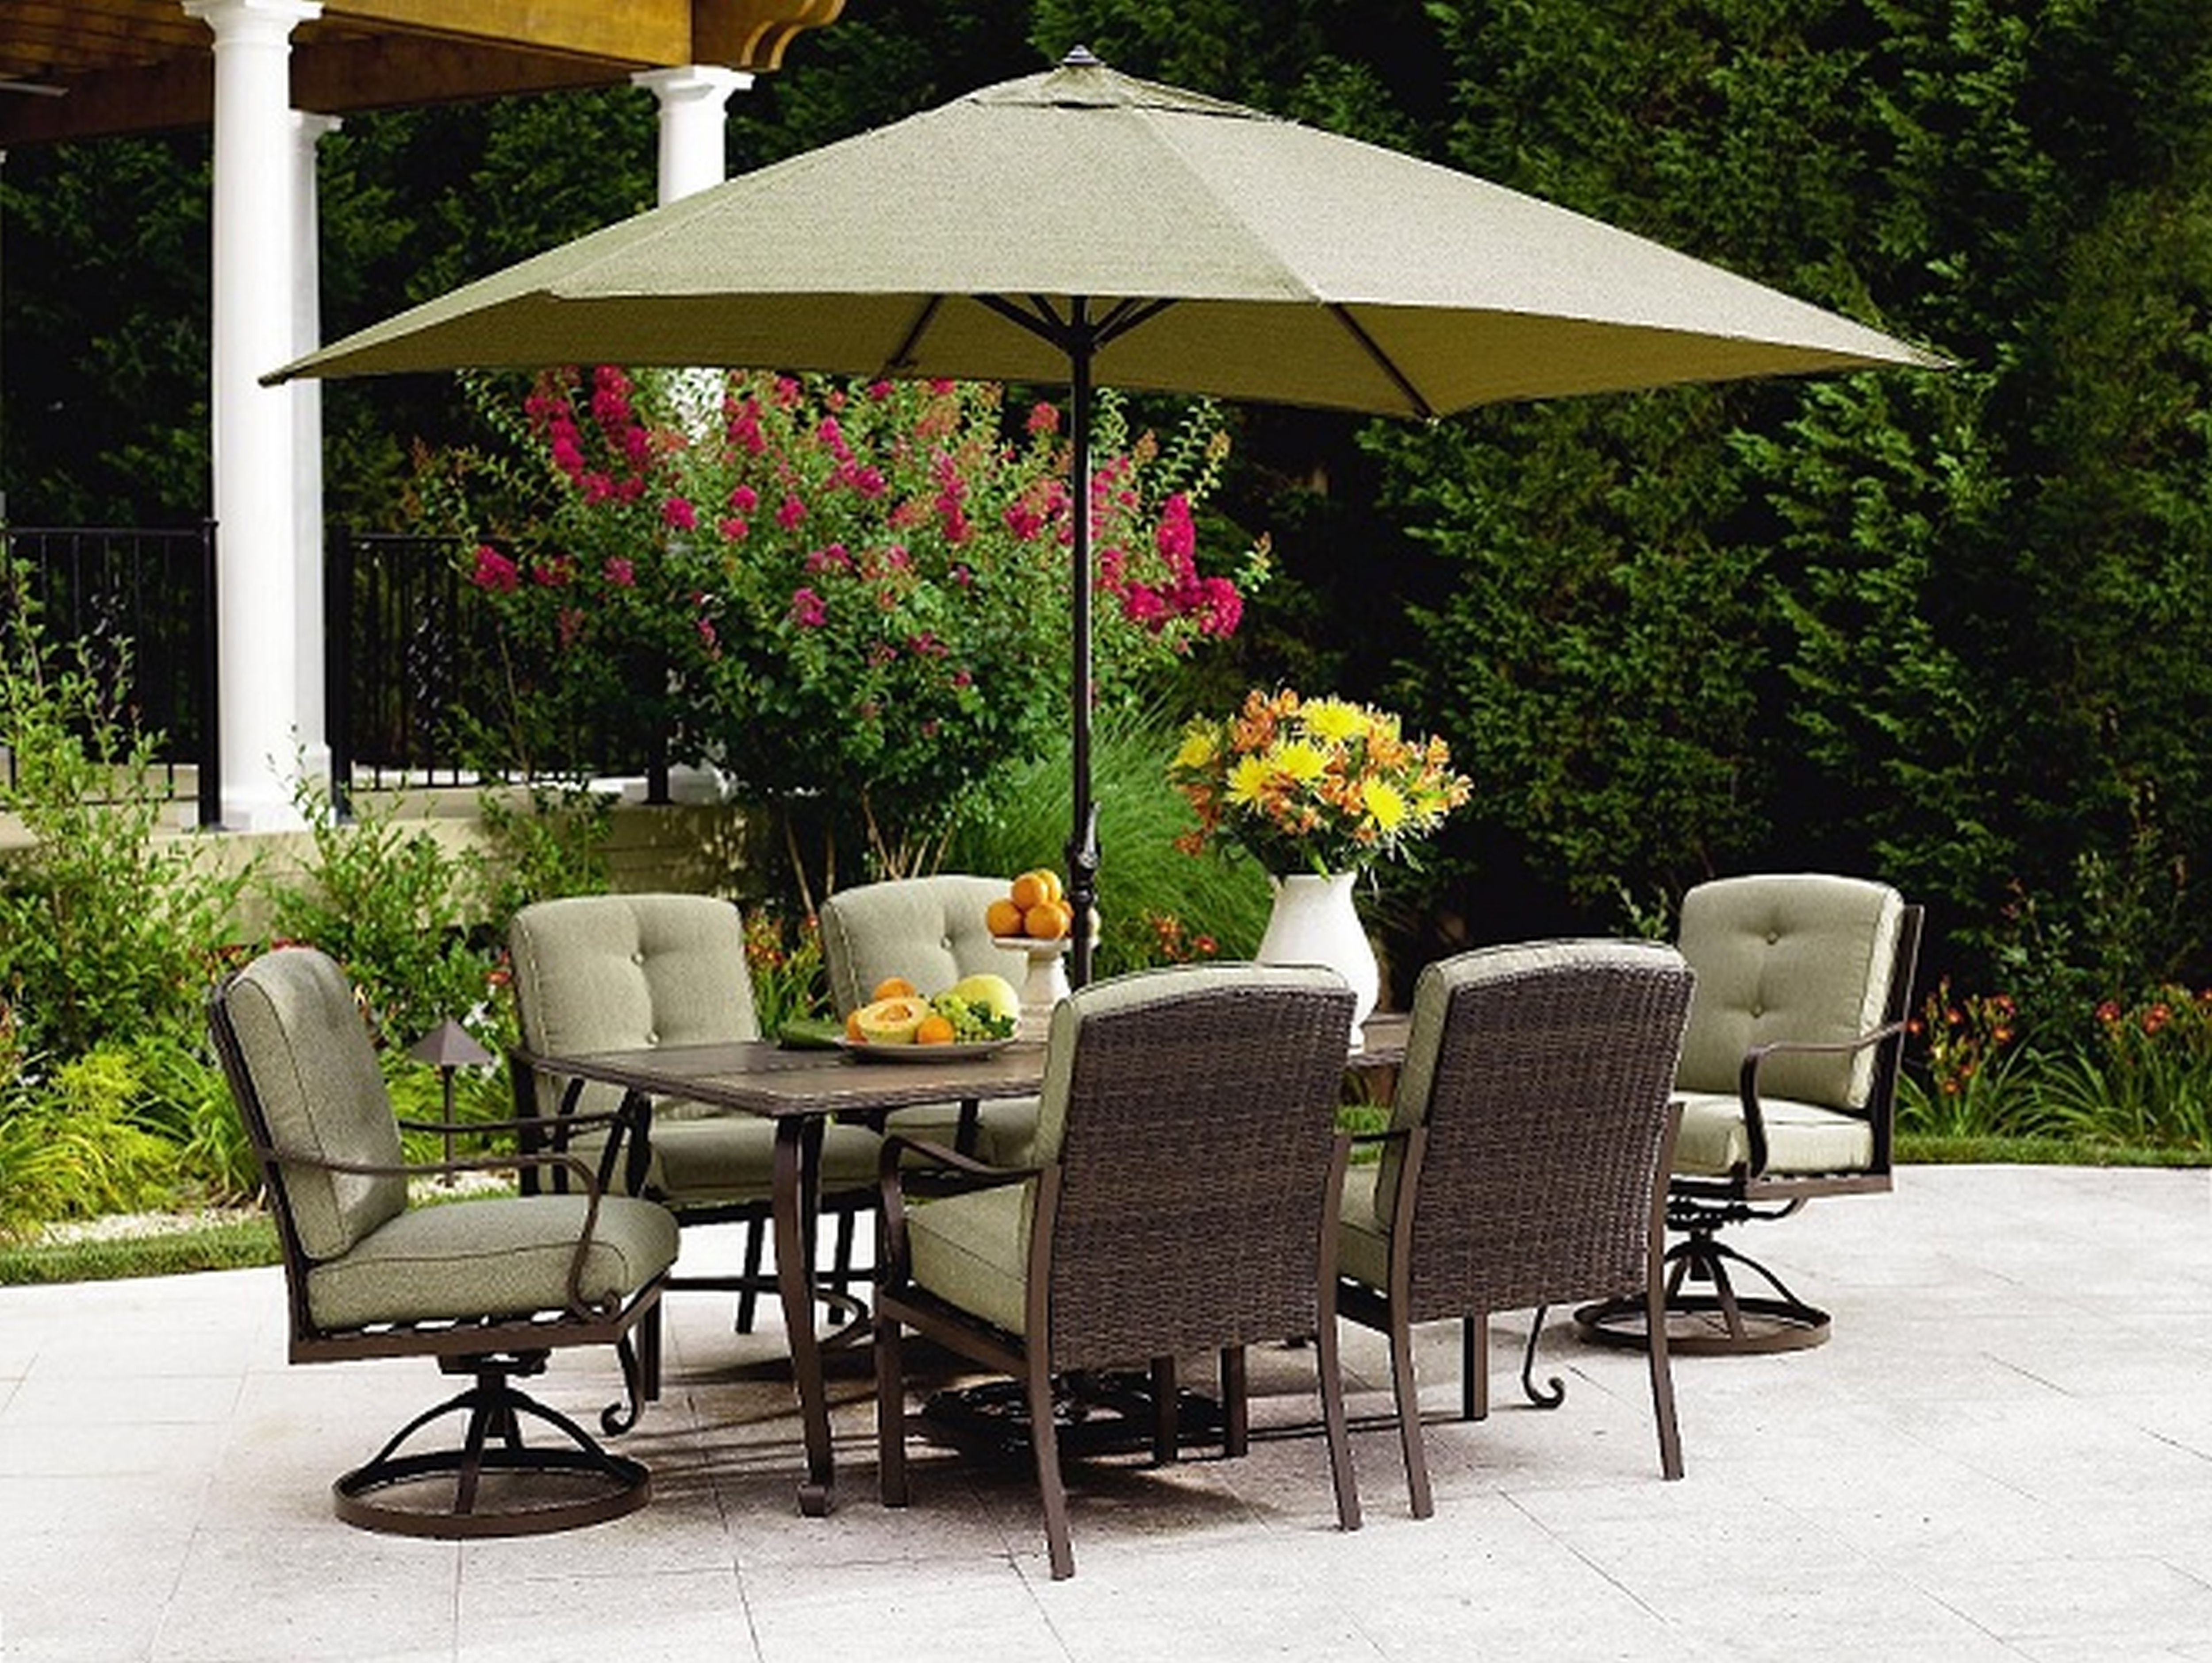 Well Liked Patio Dining Sets With Umbrellas Within Outdoor Patio Furniture With Umbrella Home Design Ideas Of Small (View 19 of 20)